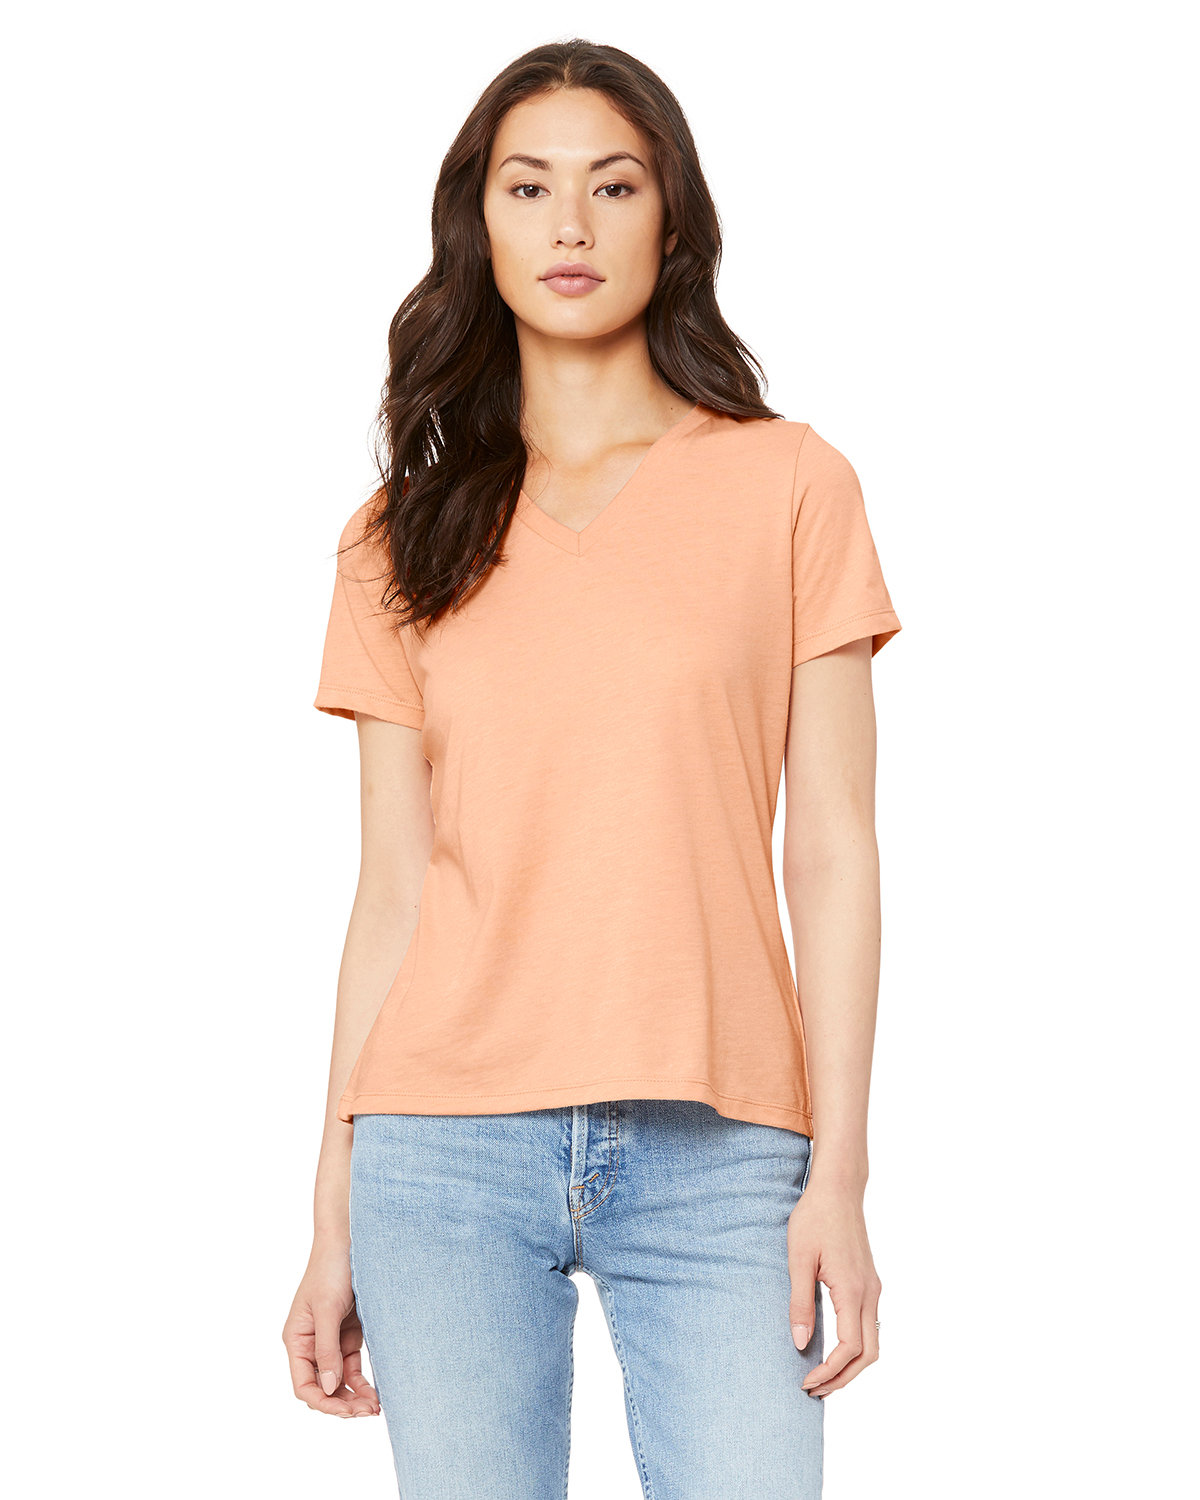 Bella + Canvas Ladies' Relaxed Jersey V-Neck T-Shirt HEATHER PEACH